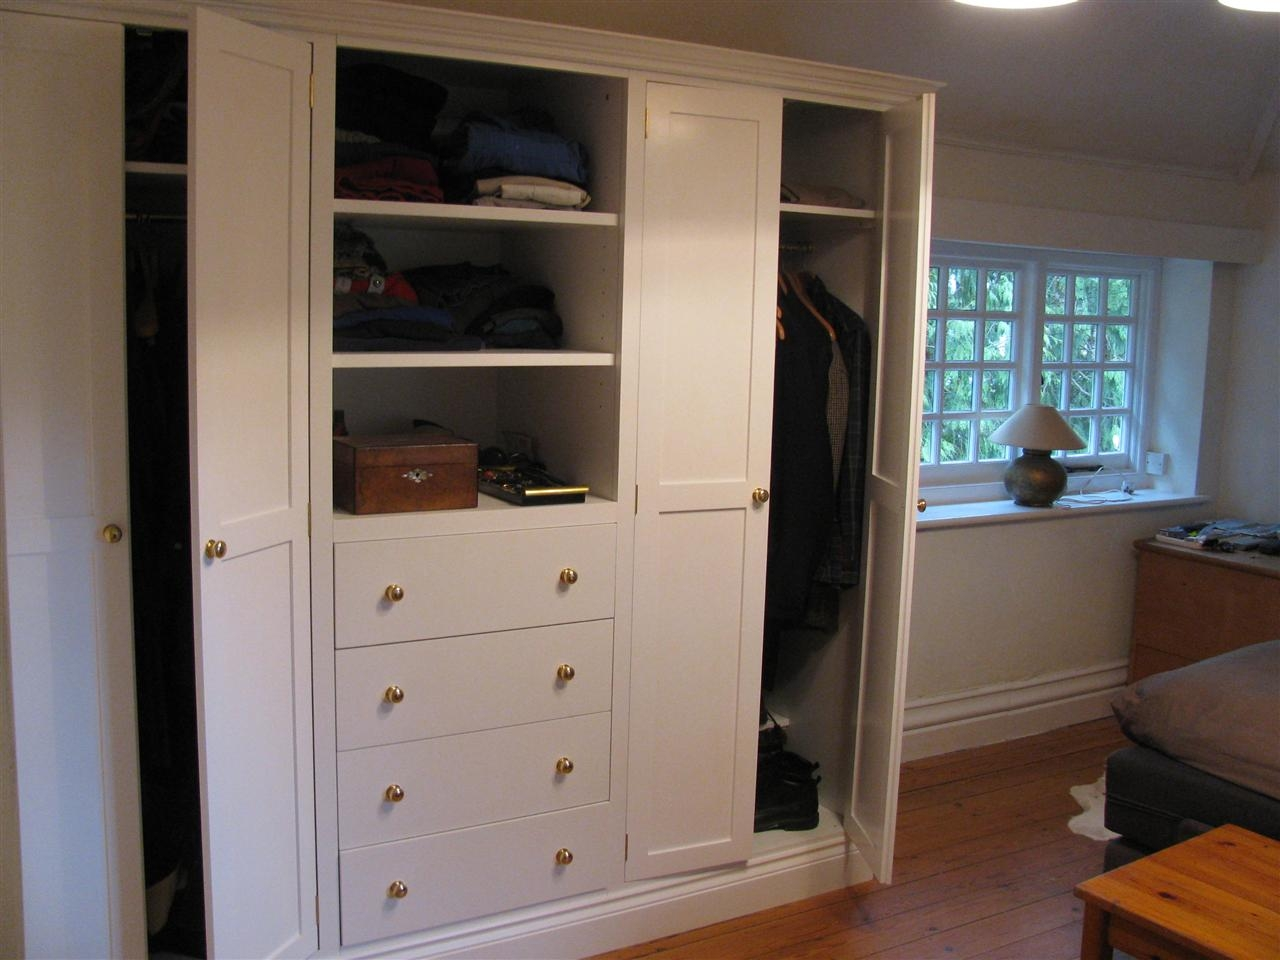 Wardrobes Pertaining To Wardrobes With Shelves (View 13 of 15)